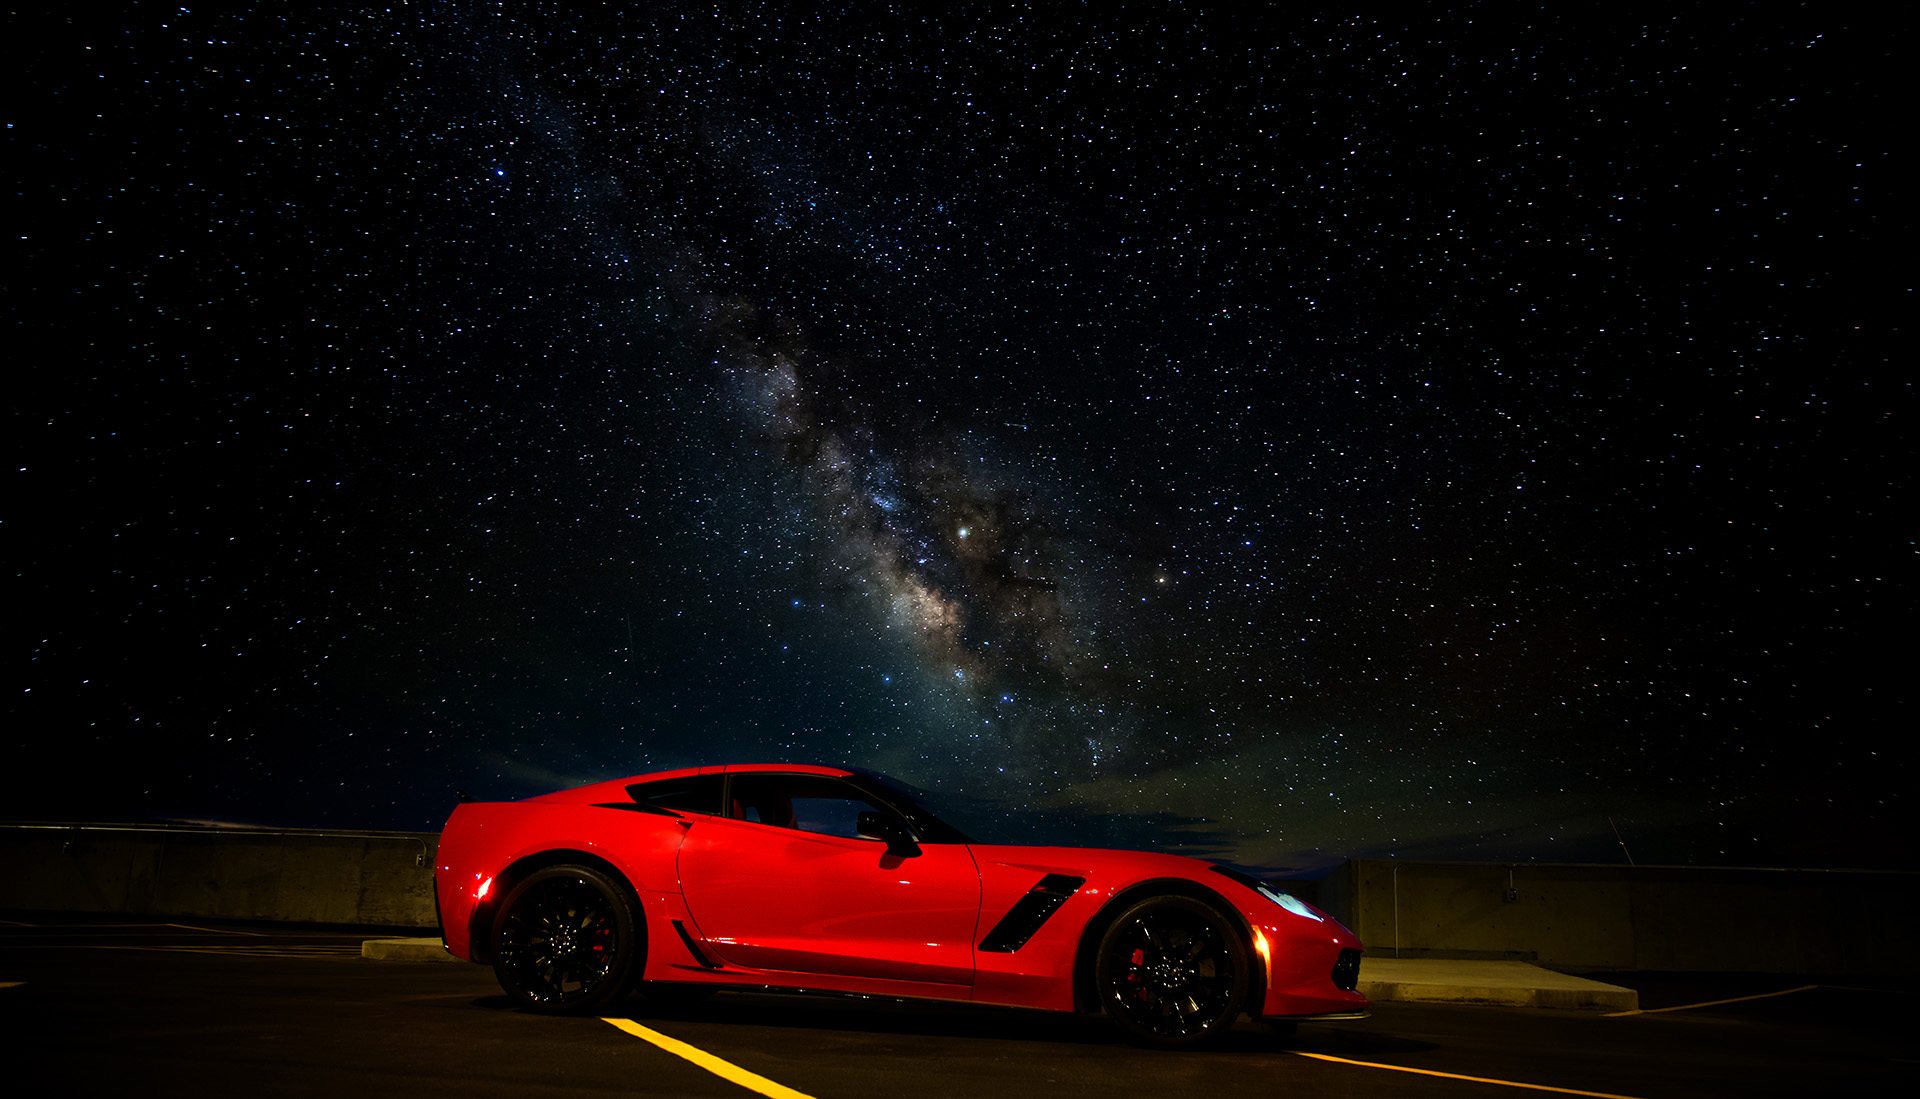 Chevy Corvette Z06 on a parkade rooftop at night with Milky Way visible